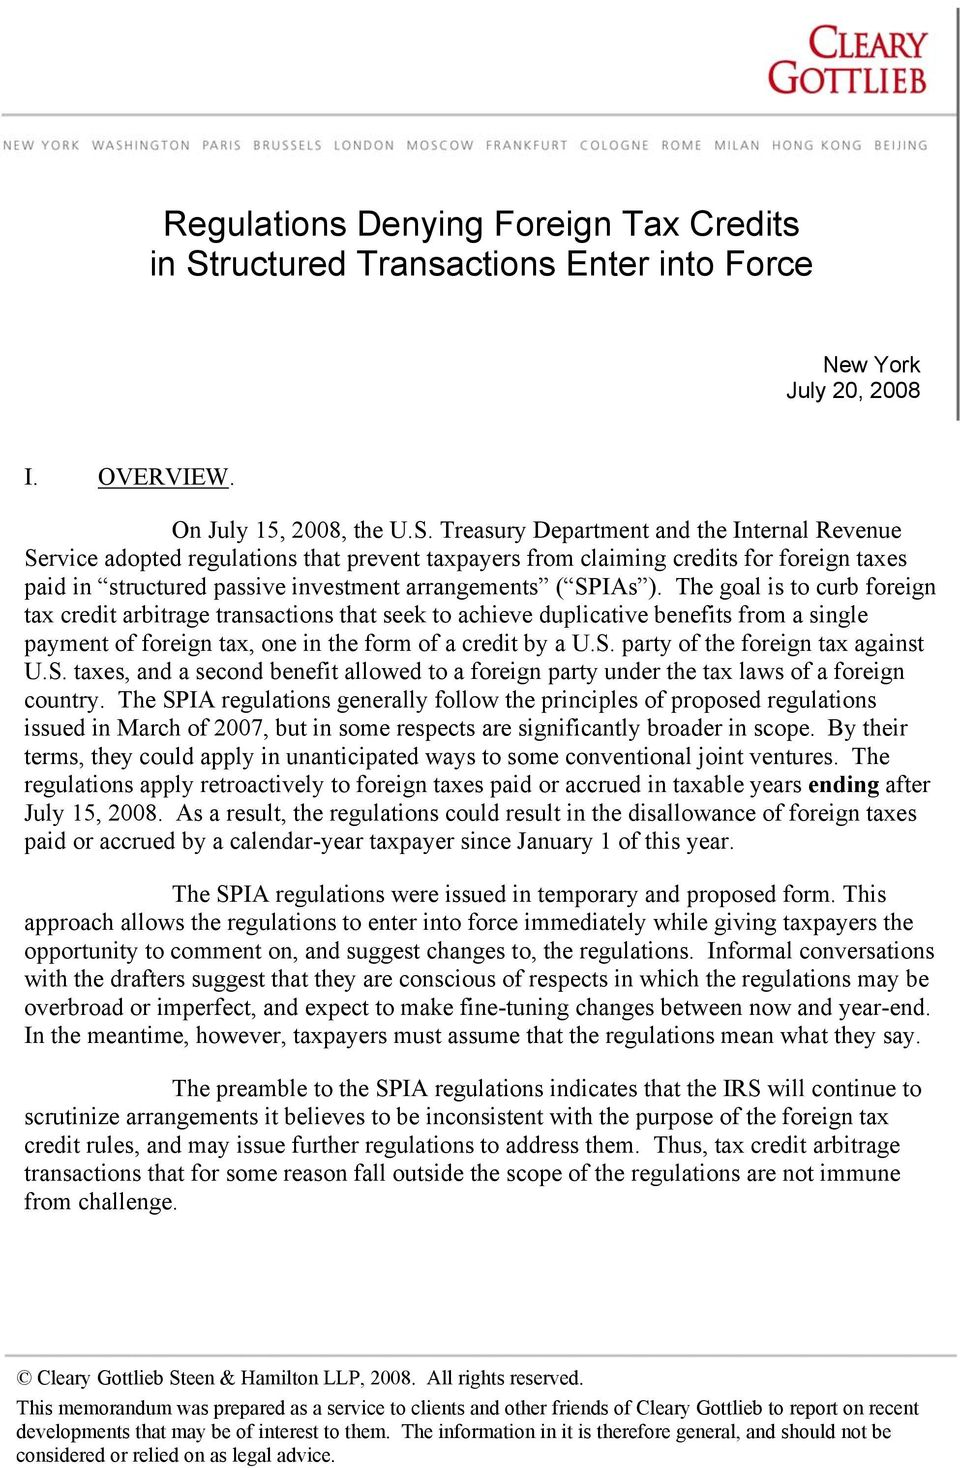 Regulations Denying Foreign Tax Credits in Structured Transactions ...